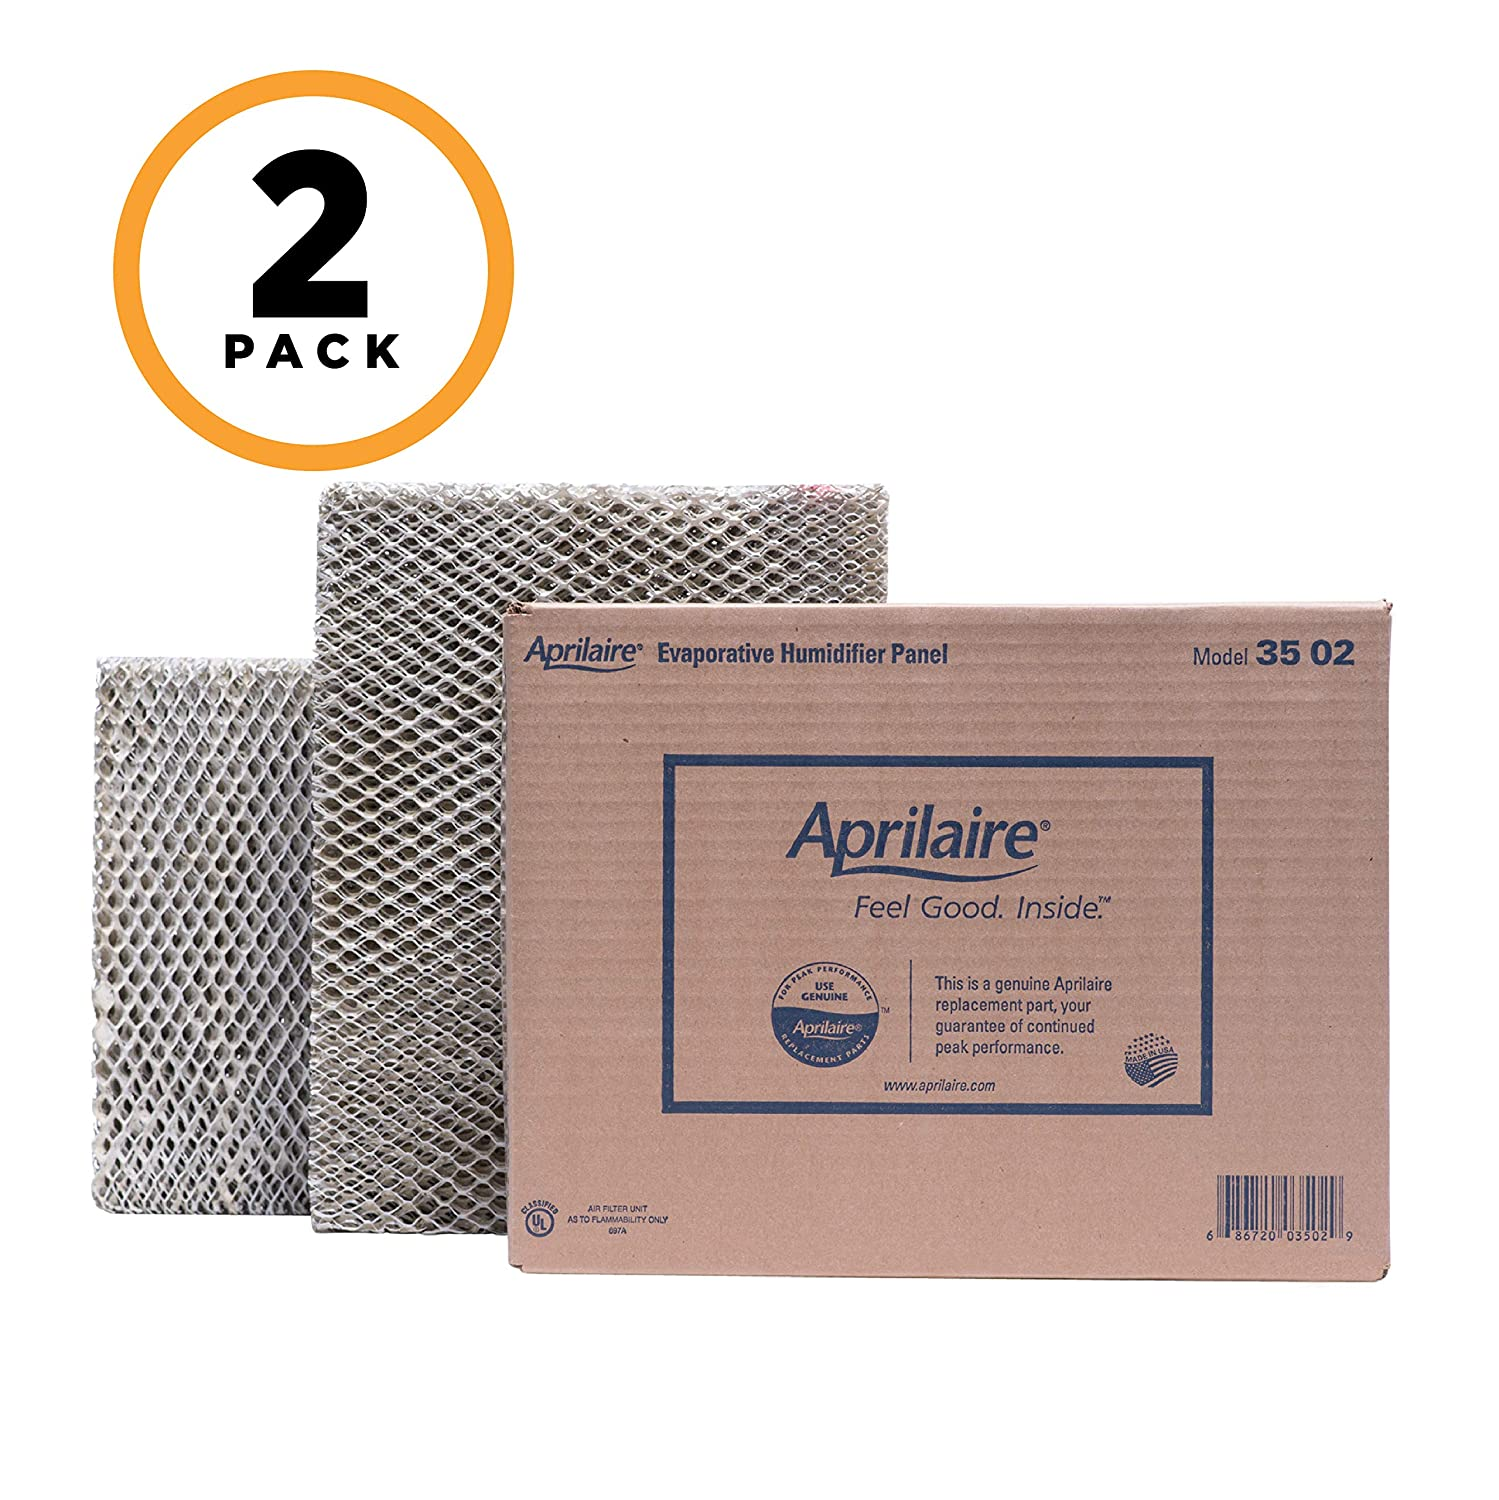 Aprilaire 35 Water Panel for Aprilaire Whole Home Humidifier Models: 350, 360, 560, 568, 600, 700, 760, 768, (Pack of 2)